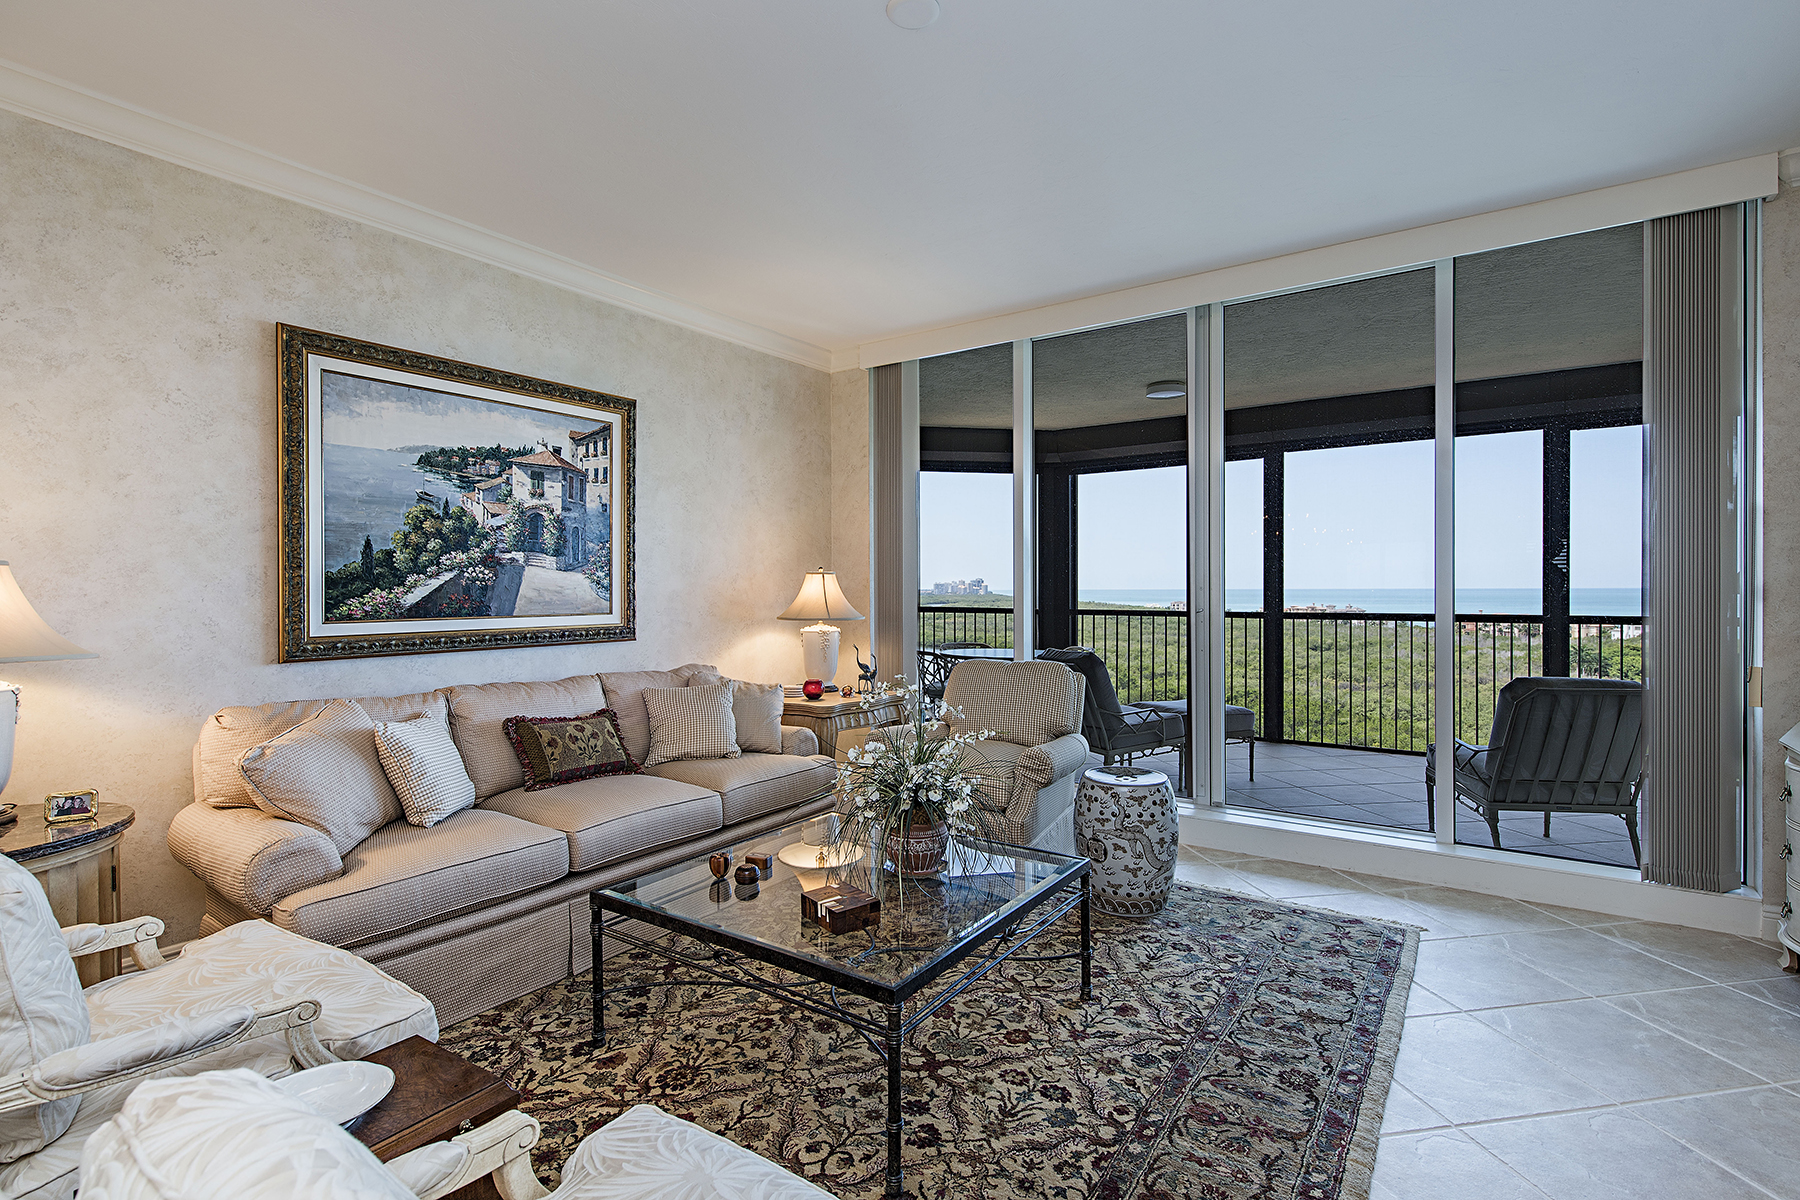 Condominium for Sale at TOSCANA AT BAY COLONY 8960 Bay Colony Dr 1203 Naples, Florida, 34108 United States